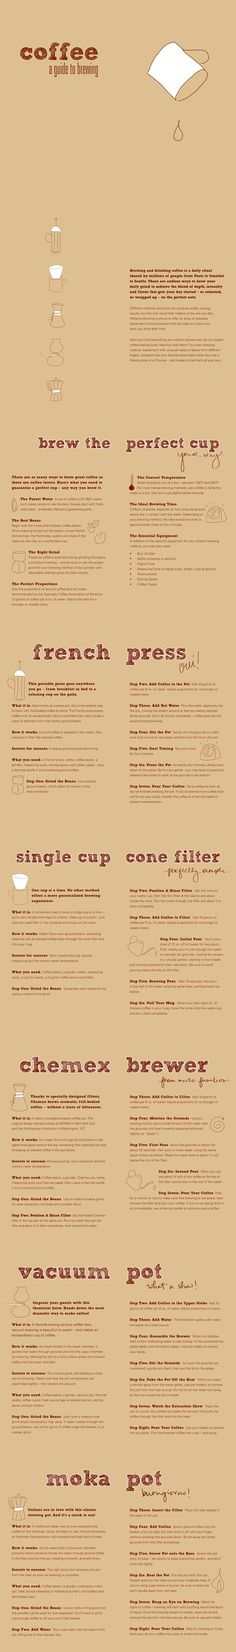 Coffee - A Guide to Brewing